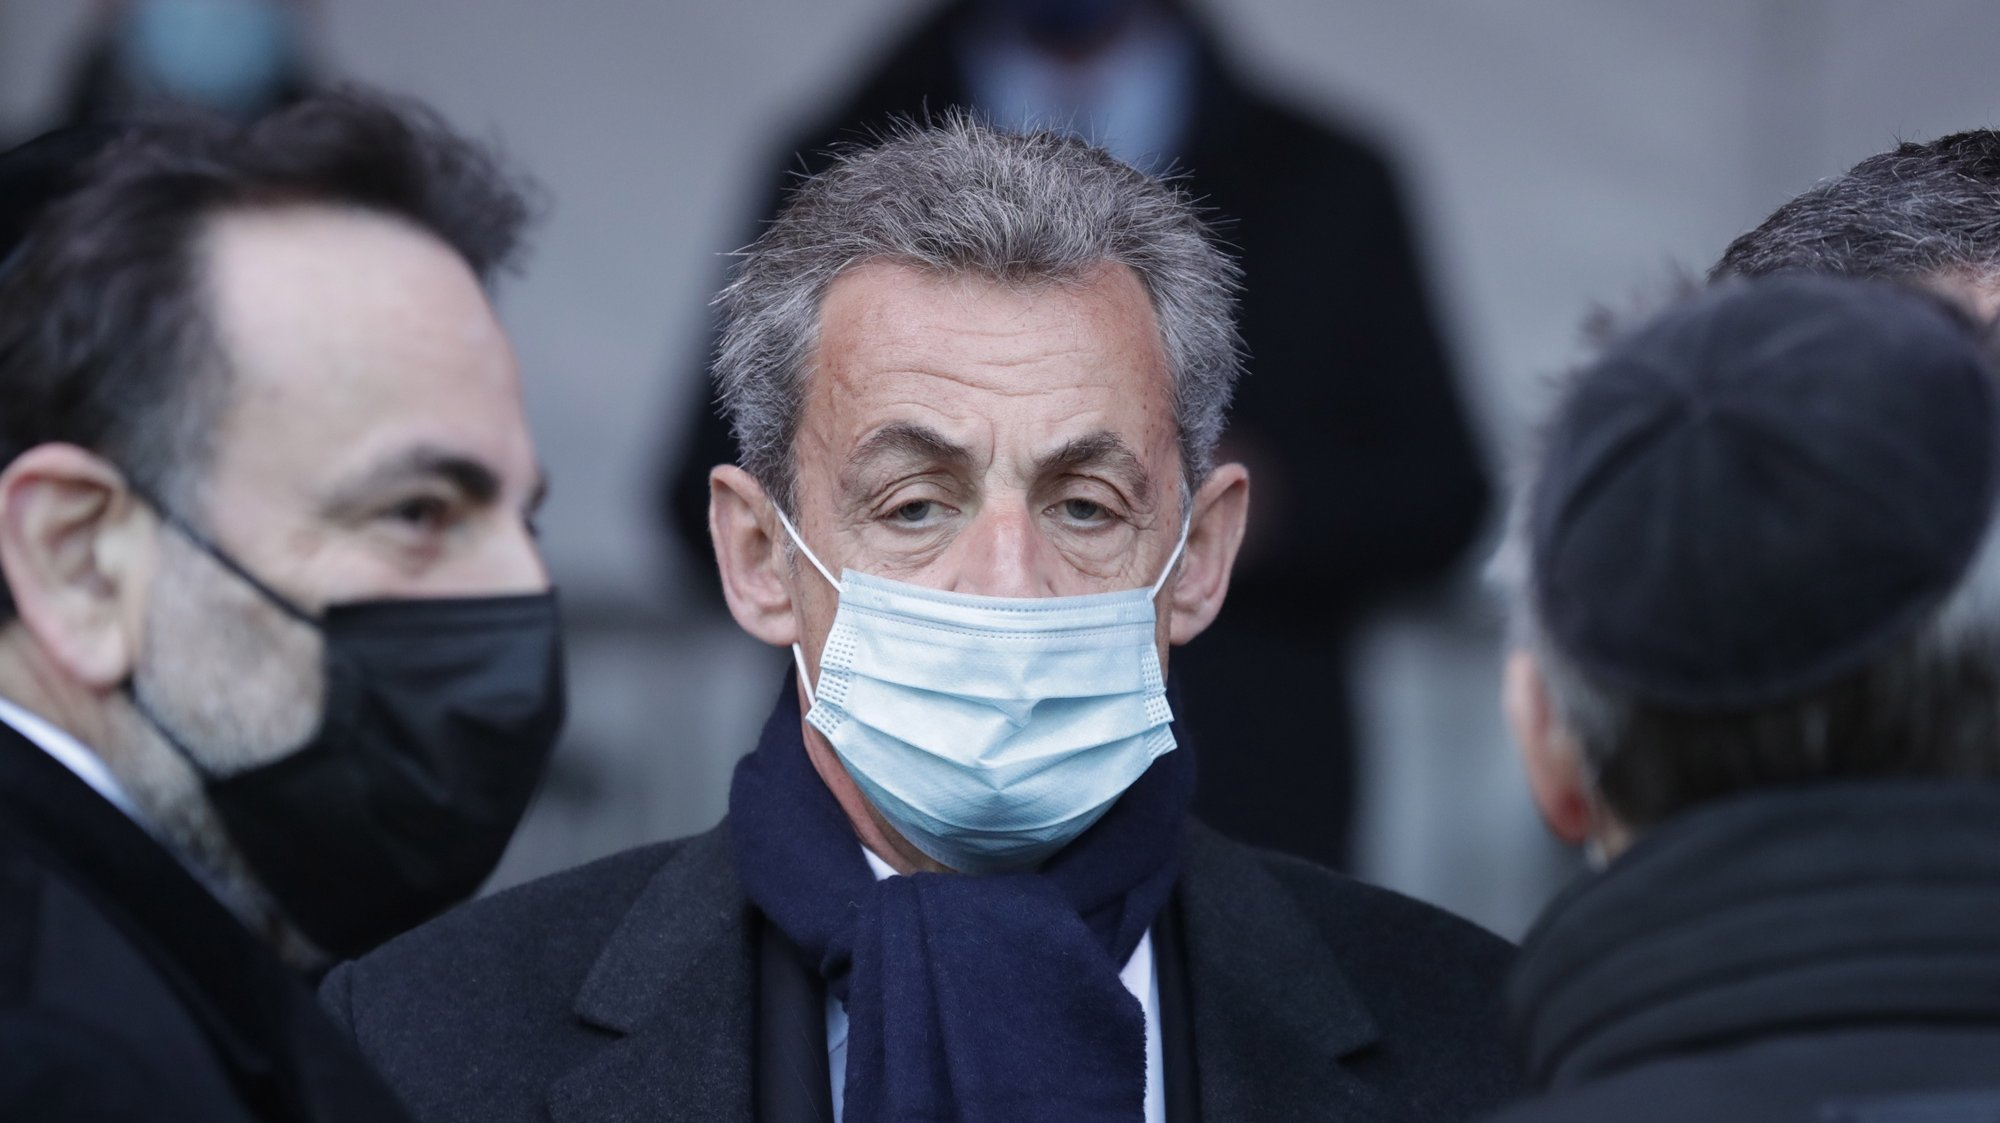 epa09066962 Former French President Nicolas Sarkozy waits before a ceremony paying homage to the victims of terrorism at the Invalides monument in Paris, France, 11 March 2021.  EPA/Thibault Camus / POOL MAXPPP OUT